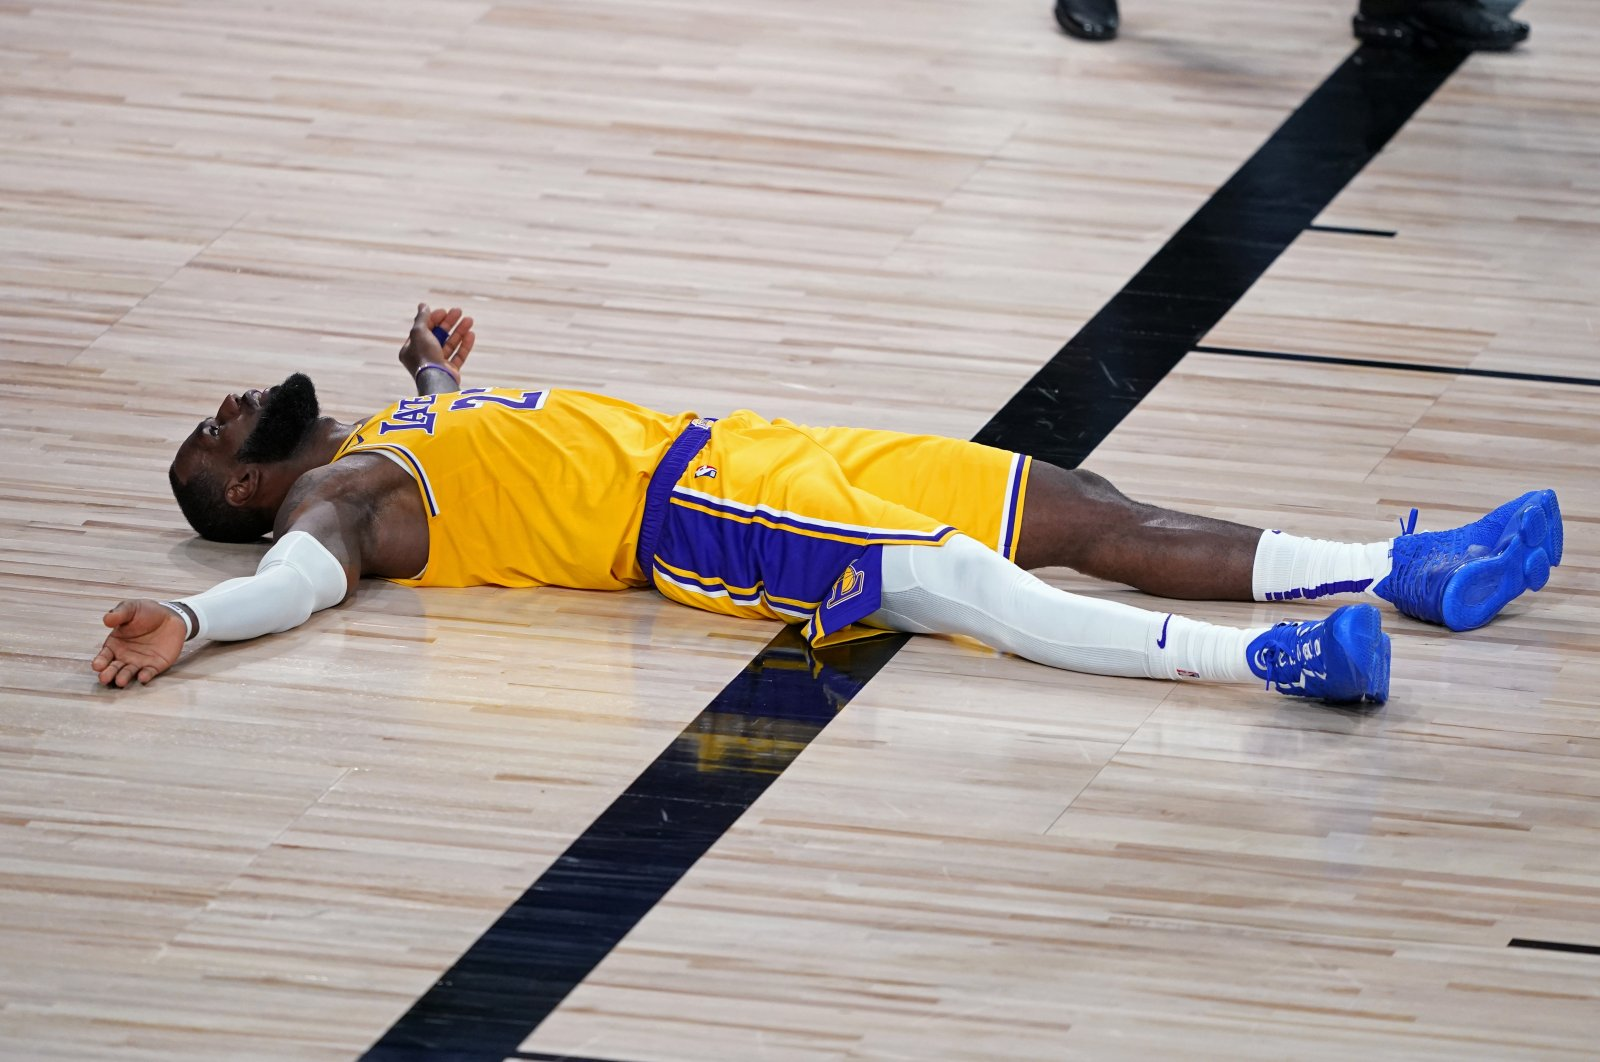 Los Angeles Lakers forward LeBron James (23) lies on the court after committing a foul during the second half of an NBA basketball game against the Portland Trail Blazers in Lake Buena Vista, Florida, U.S., Aug. 18, 2020. (AP Photo)